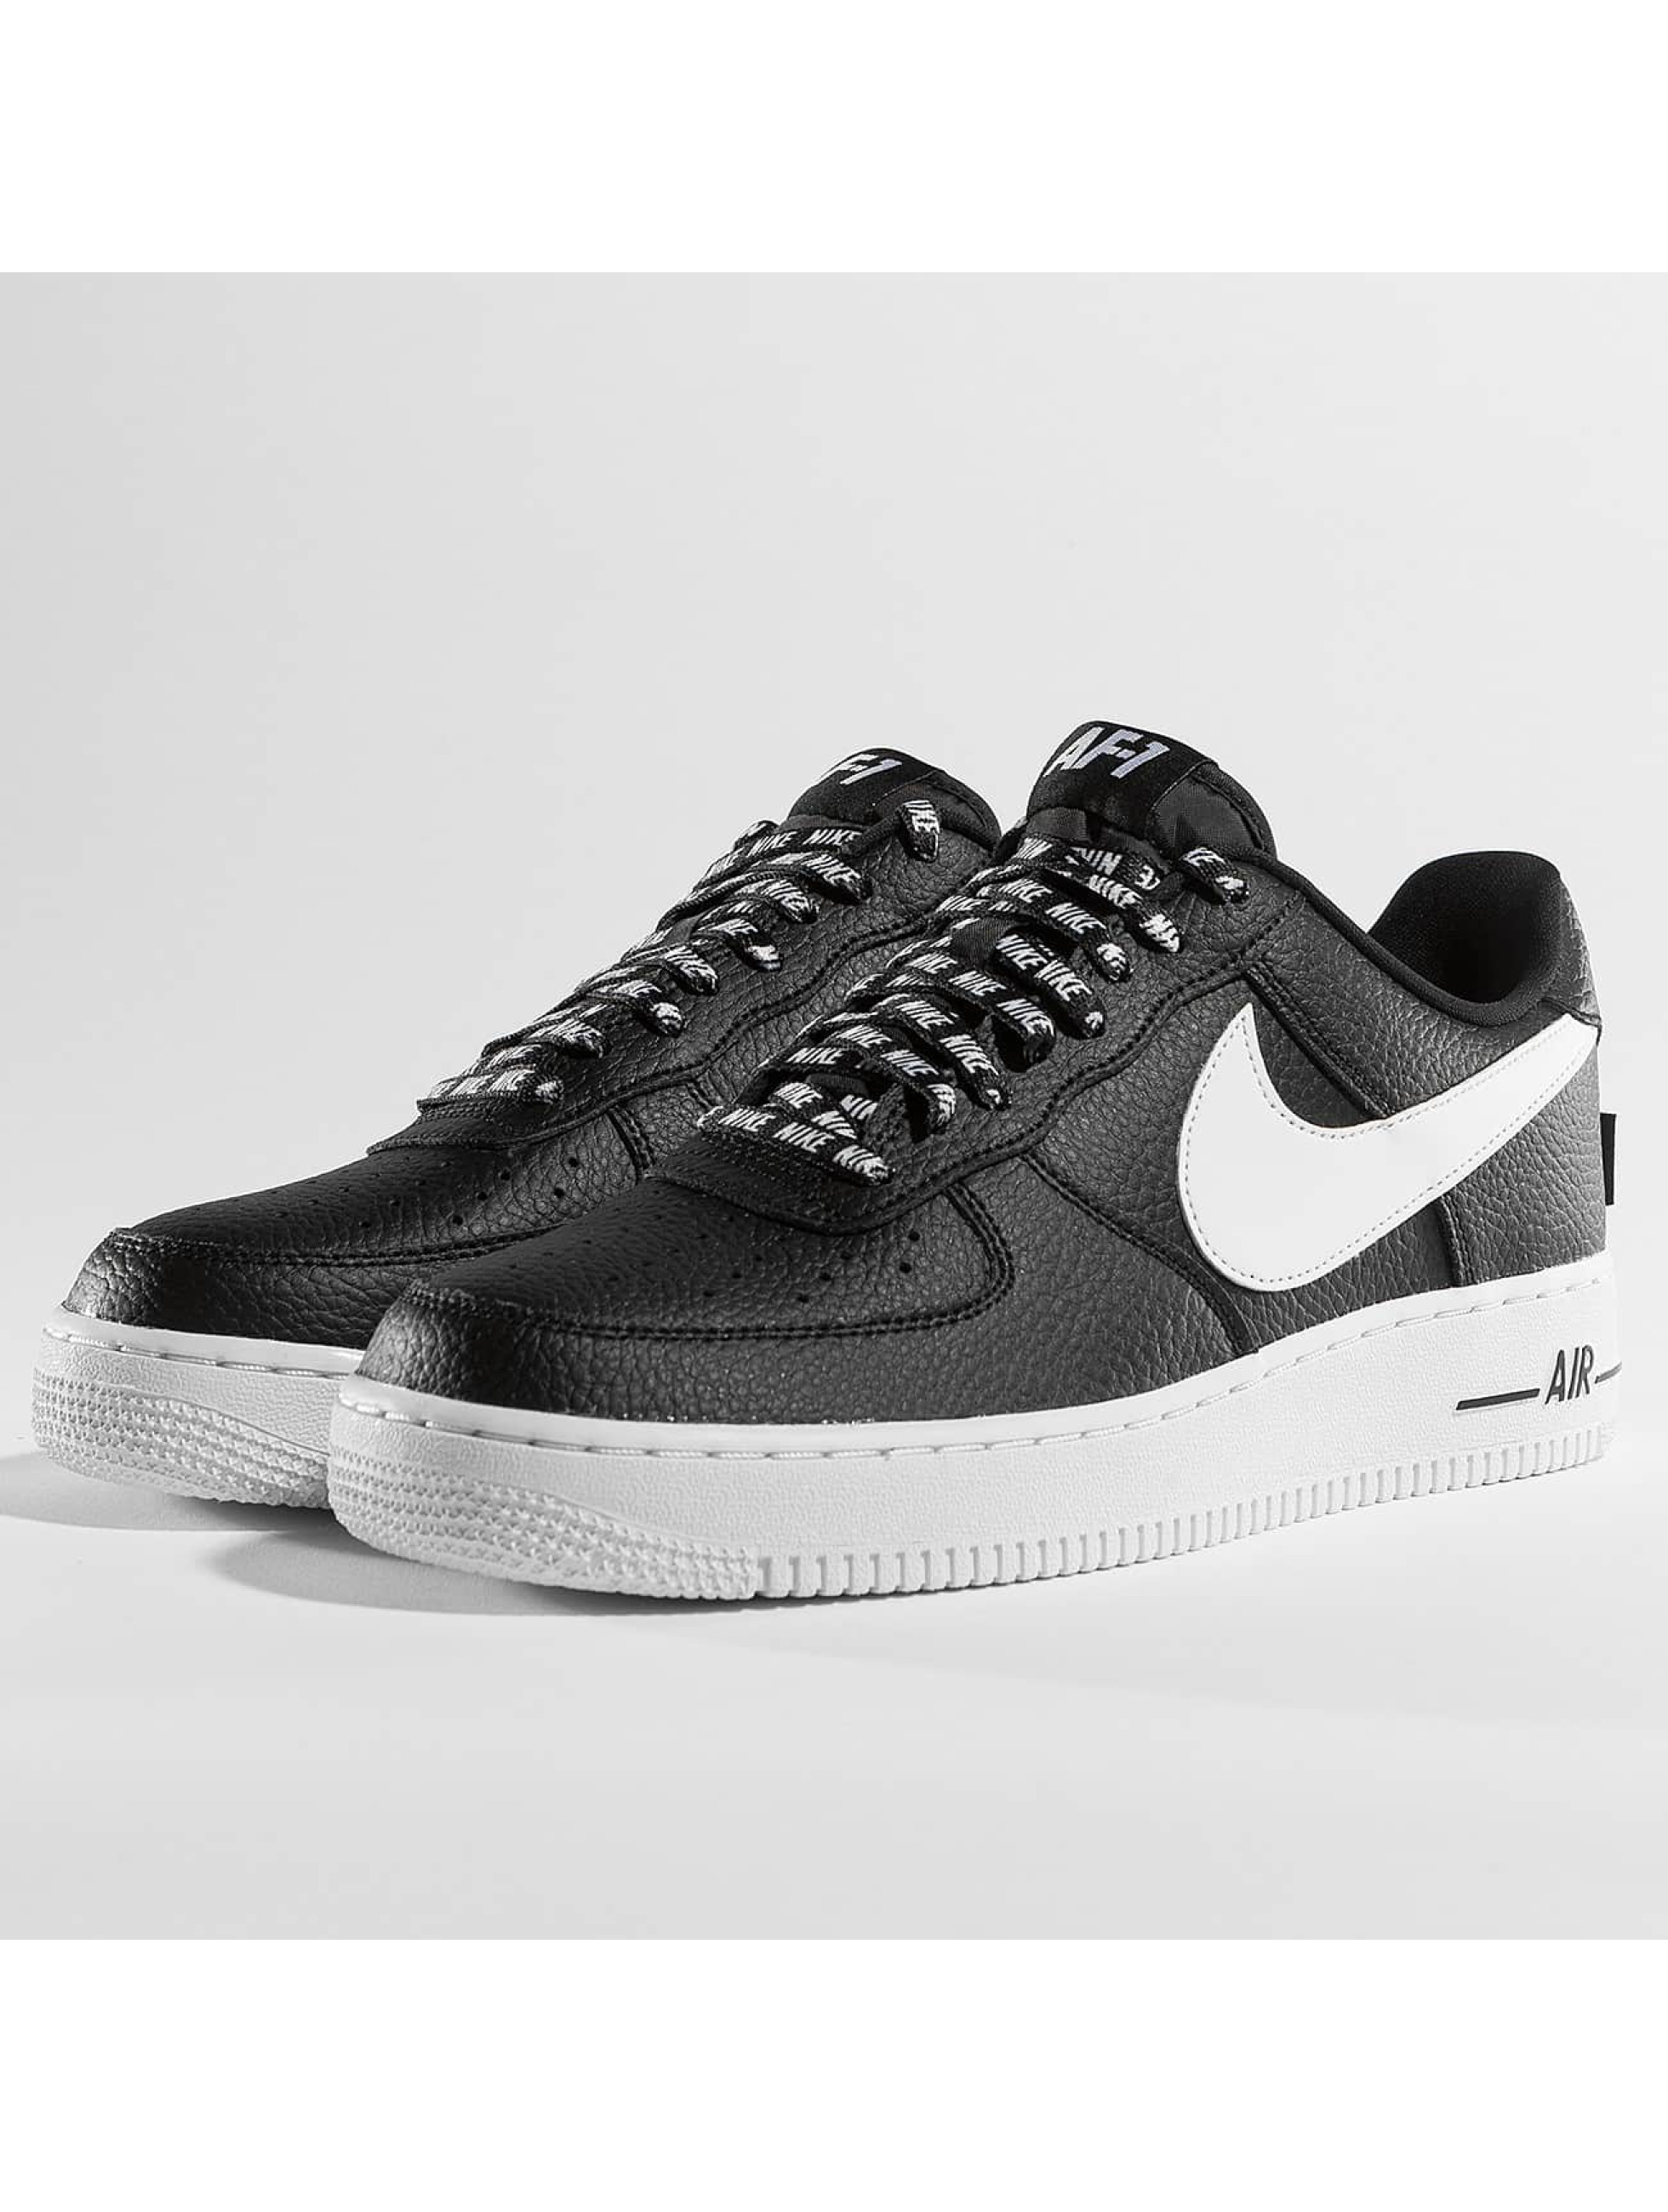 Nike Zapatillas de deporte Nike Air Force 1 07' LV8 negro